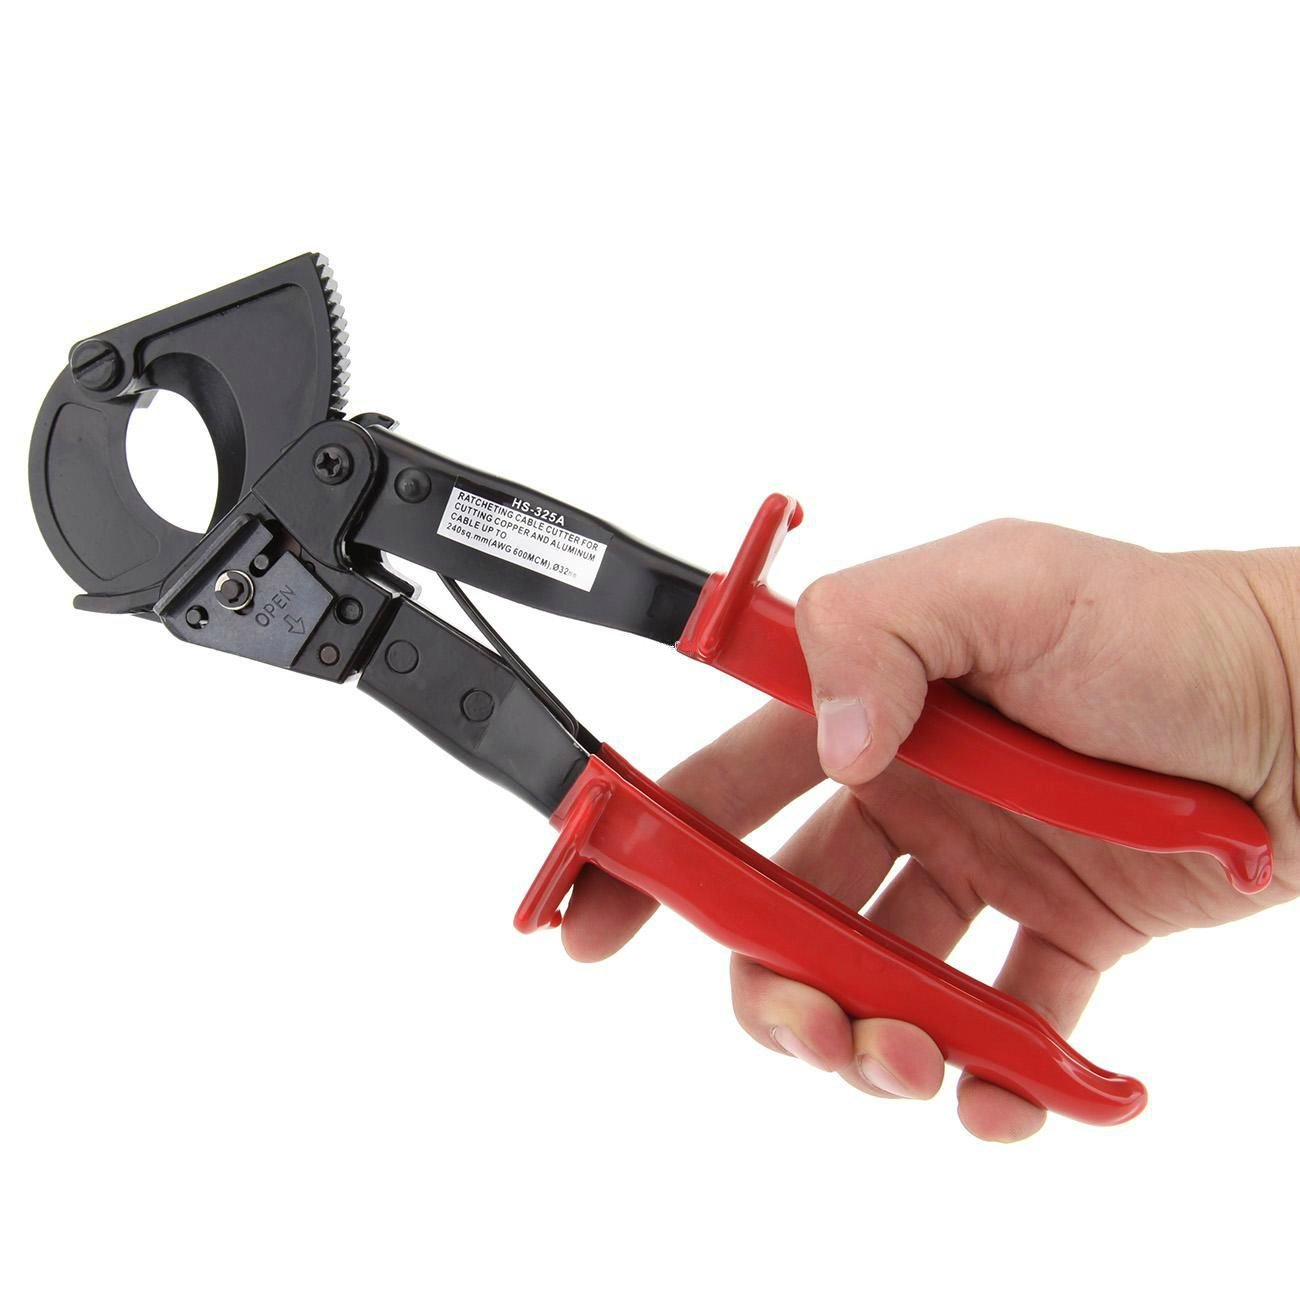 Agile-shop Ratchet Cable Wire Cutter Dual purpose: It cuts wires… but we also keep it handy to quickly cut lines in an emergency.